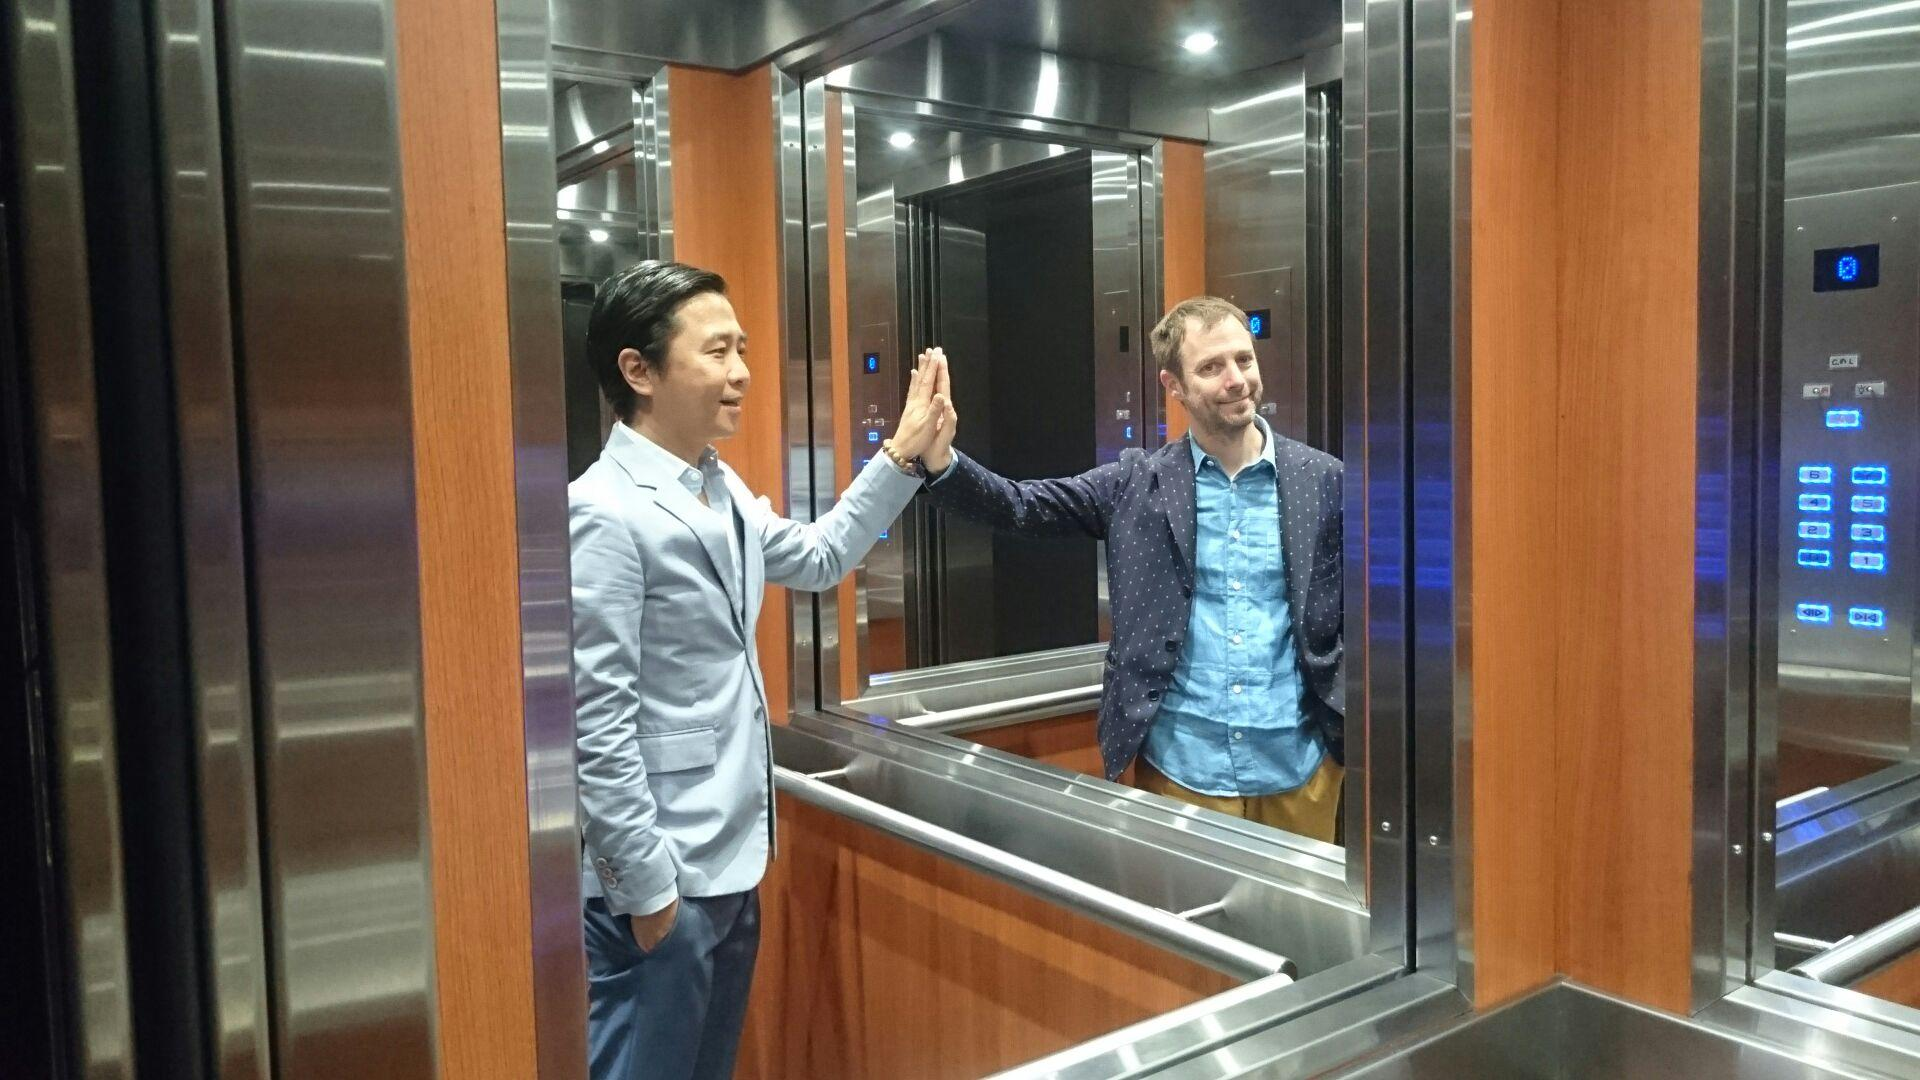 Leandro Erlich participates in Group show at Taiwan